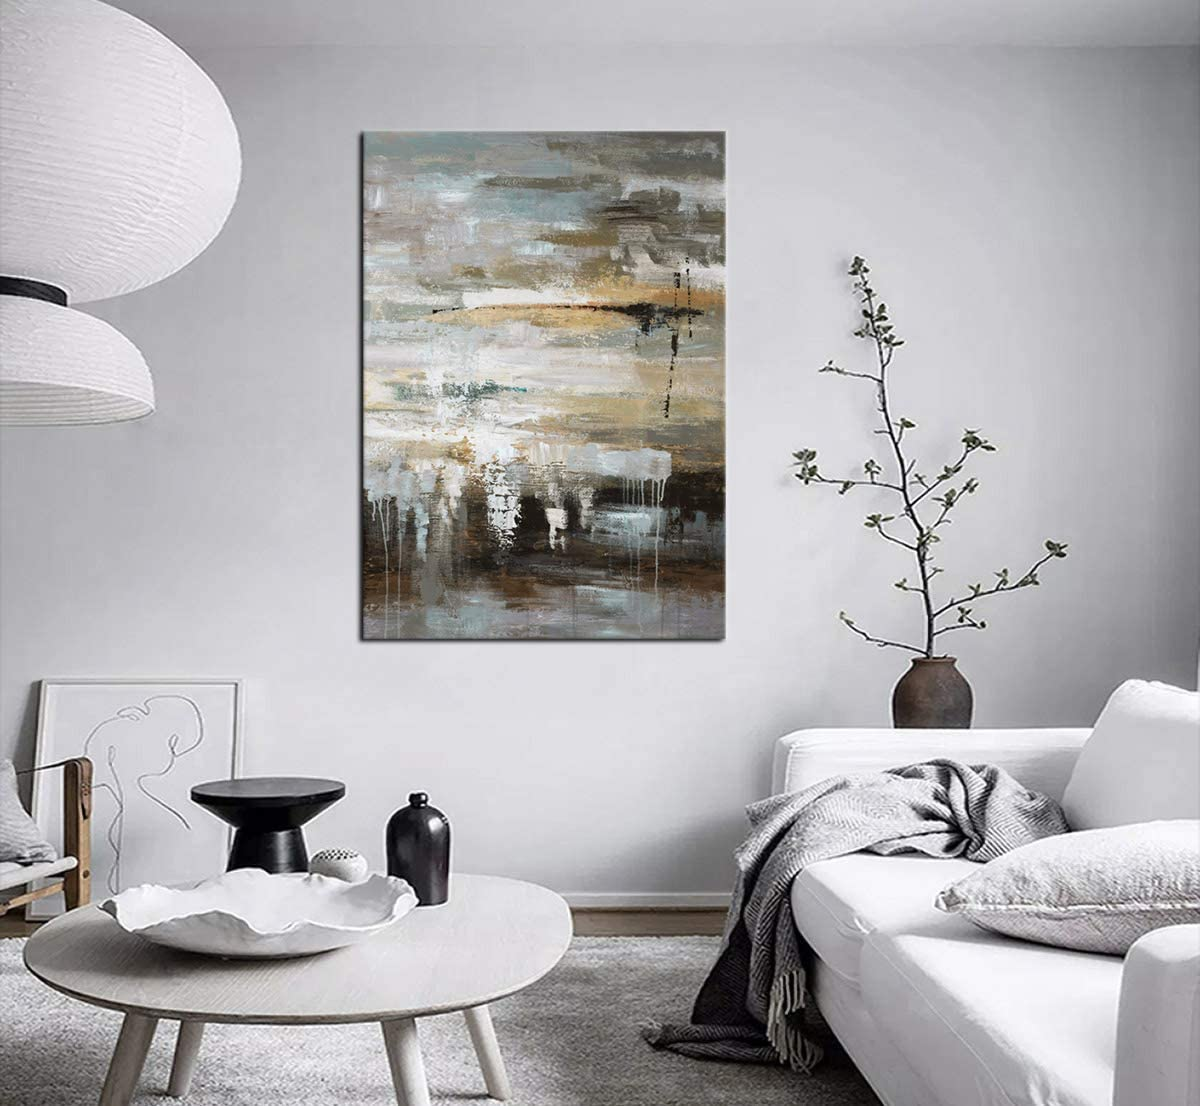 Large Abstract Wall Art Ocean Canvas Artwork Modern Brown Grey Abstract Landscape Retro Contemporary Canvas Pictures for Bedroom Bathroom Living Room Kitchen Office Home Decor Framed Ready to Hang 50 x 70cm